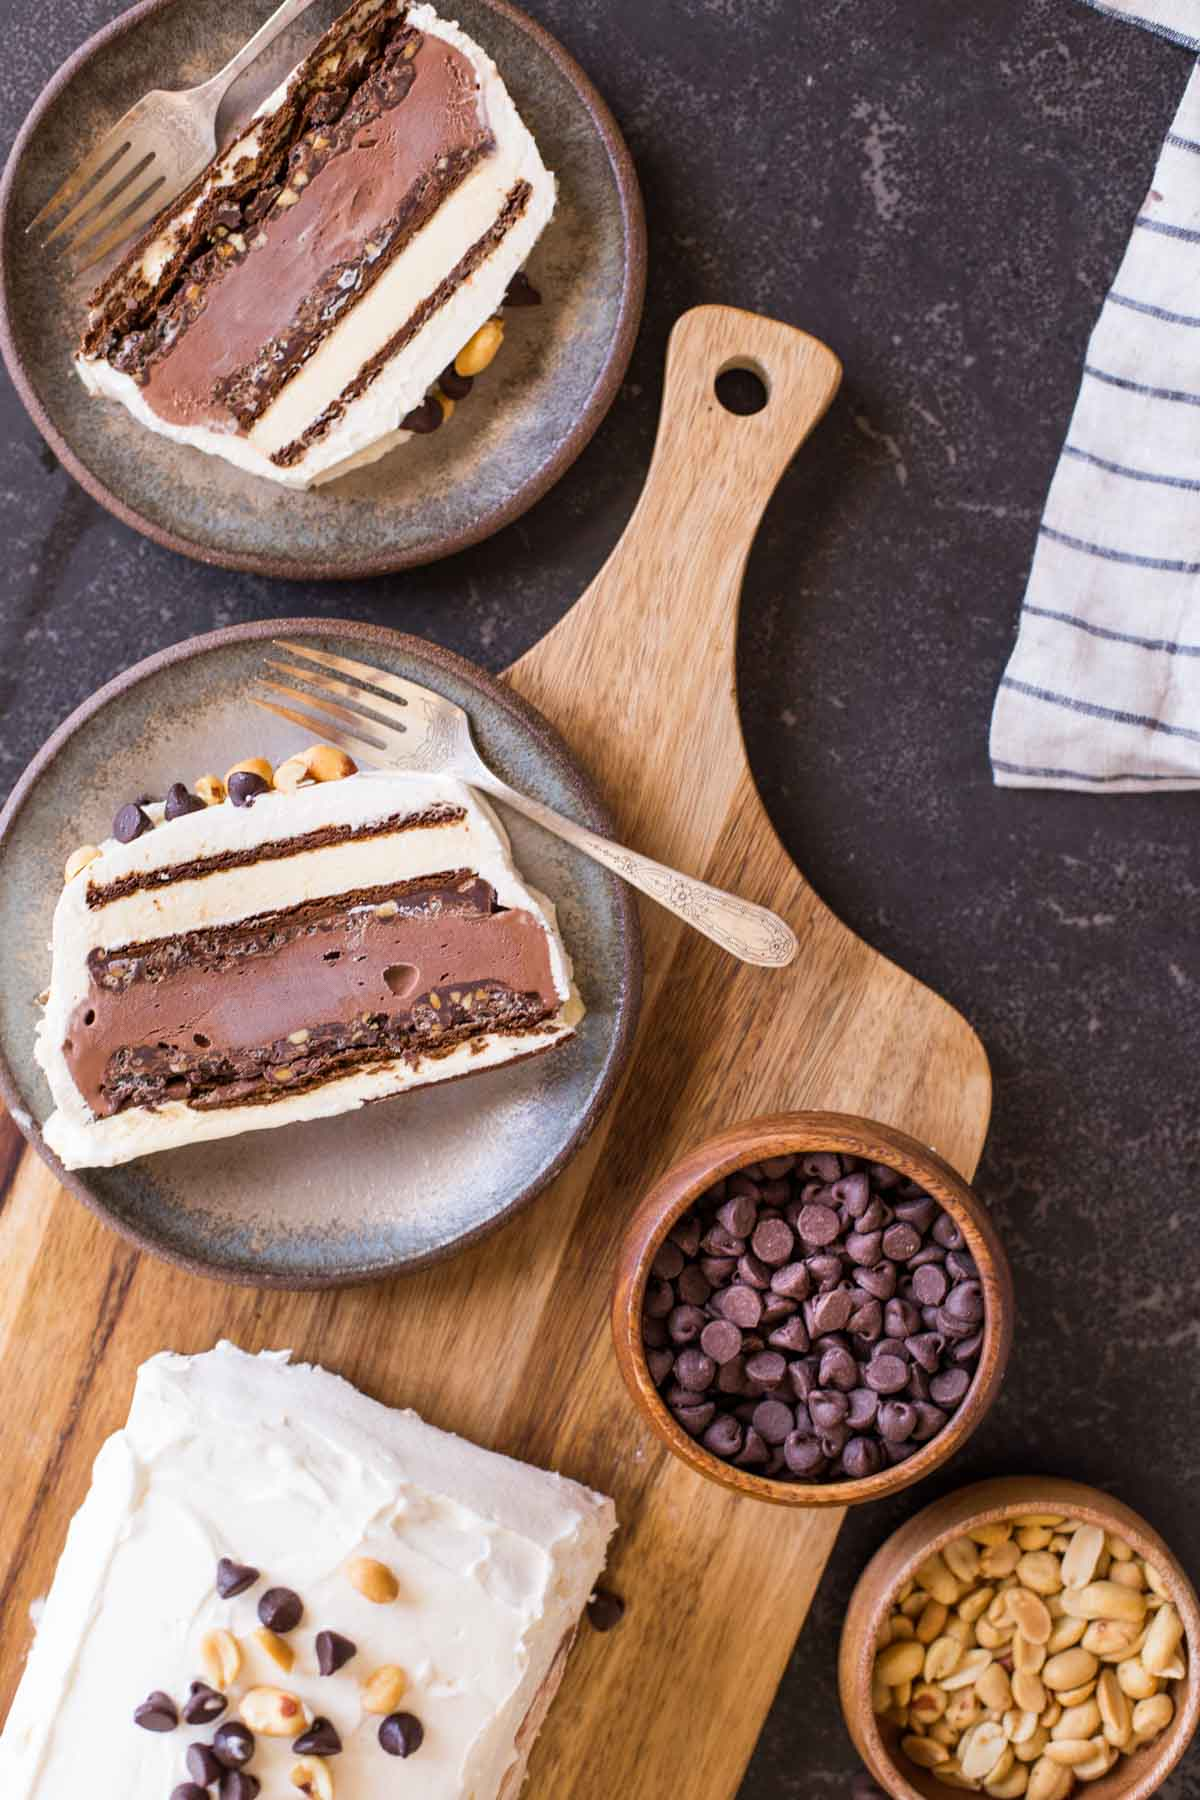 Two slices of Chocolate Peanut Butter Ice Cream Slice Cake on plates with forks, sitting next to the rest of the cake, along with a bowl of chocolate chips and a bowl of peanuts.